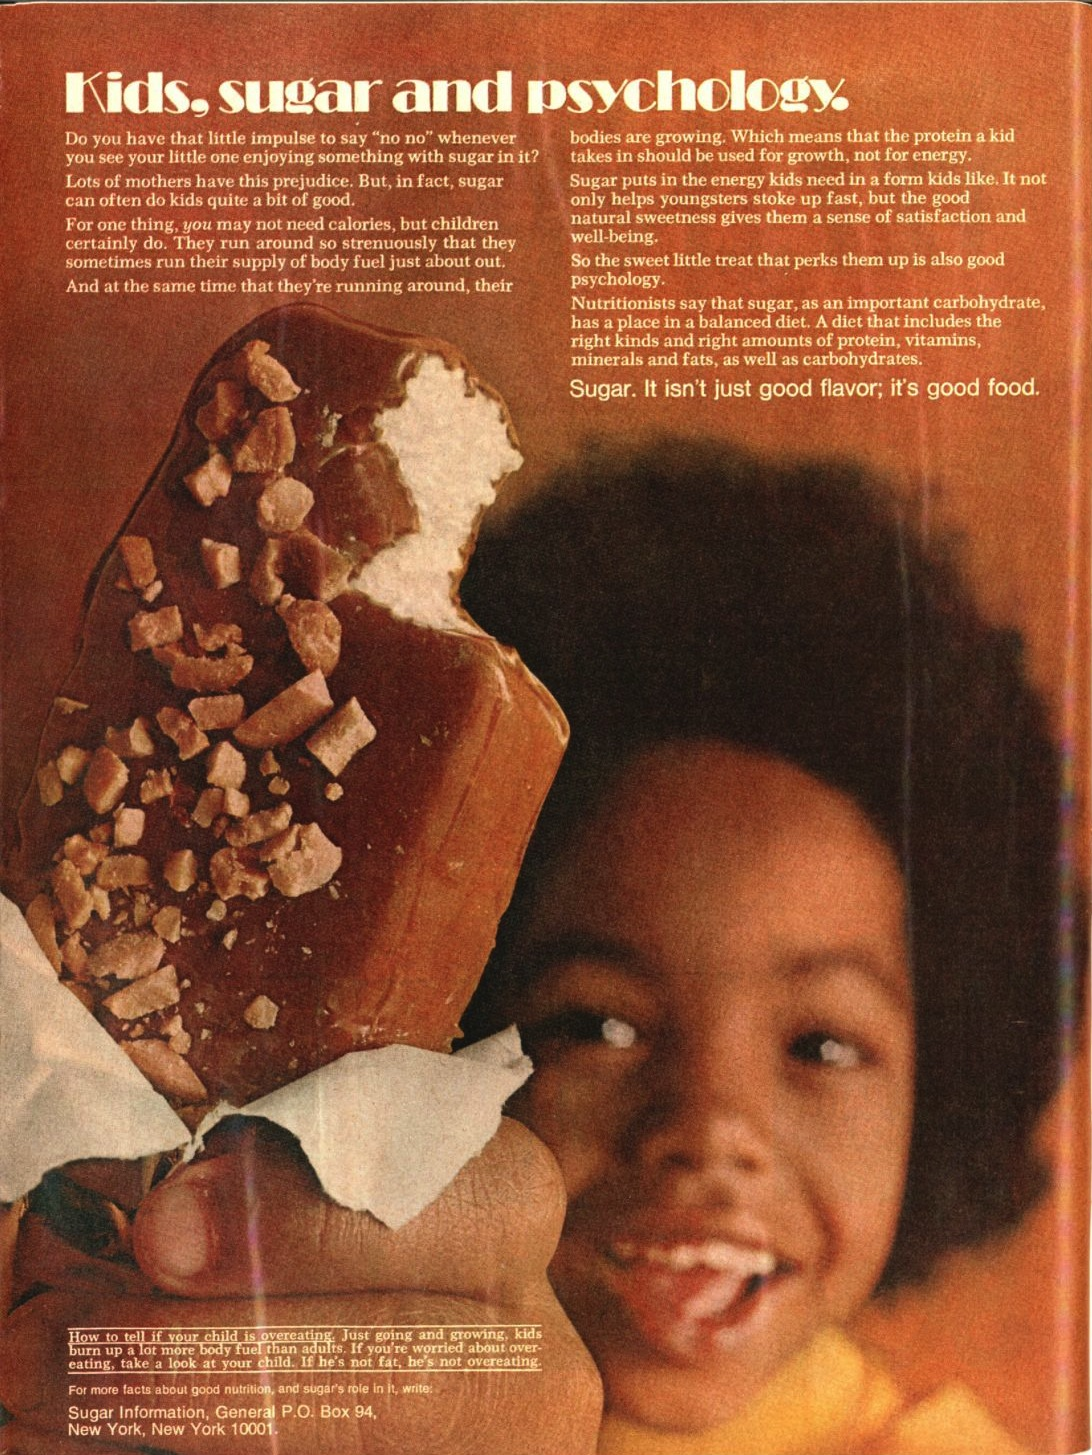 A pro-sugar ad that appeared in the Dec. 11, 1972, issue of TIMESugar helps kids, this campaign informs readers, by providing energy and  a sense of satisfaction and well-being.